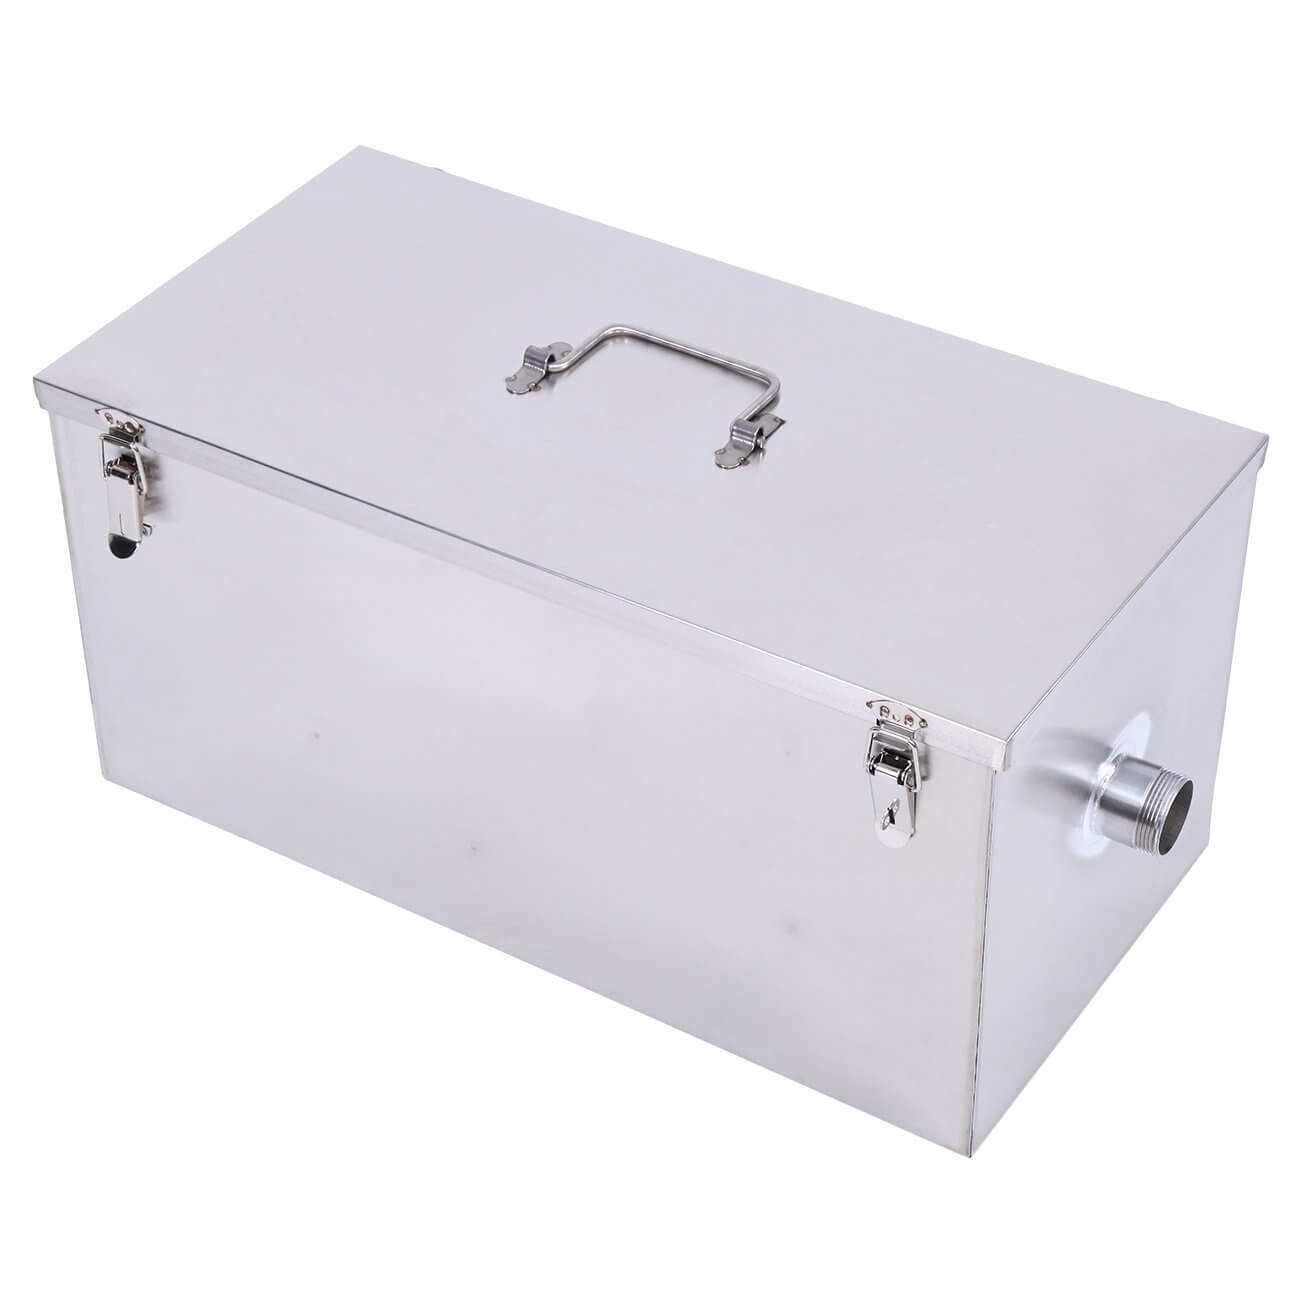 Commercial Grease Trap 25 LB